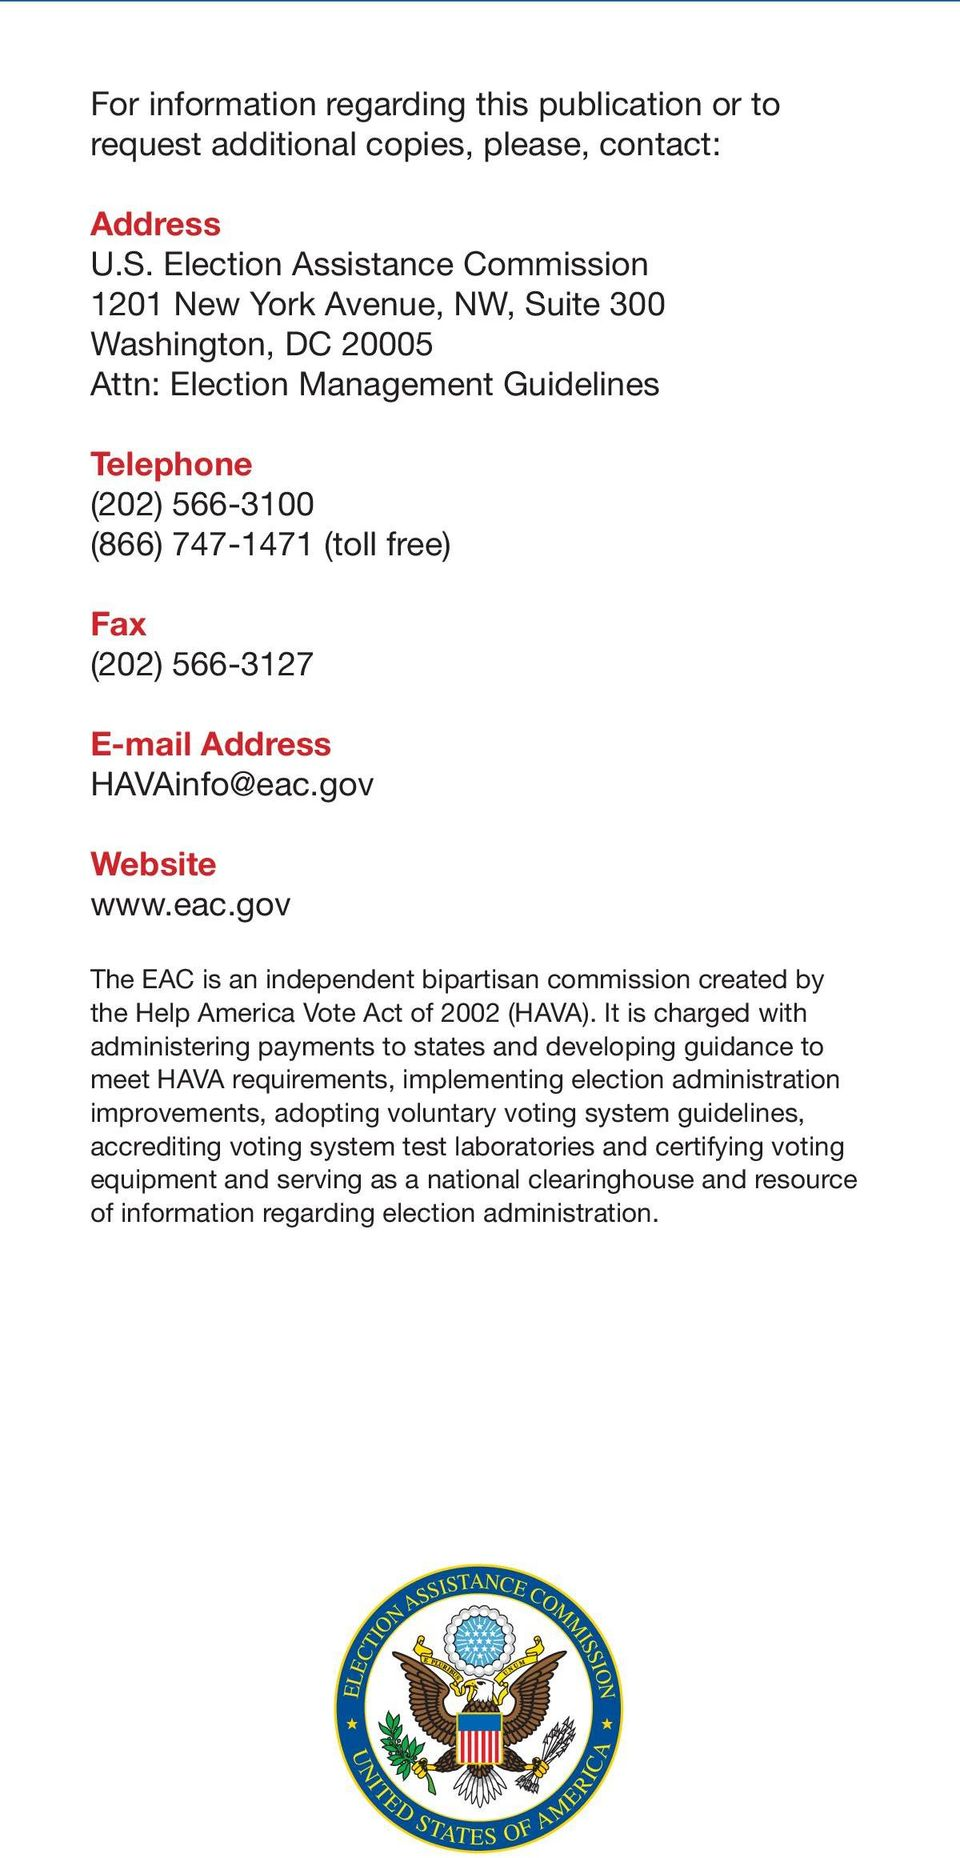 E-mail Address HAVAinfo@eac.gov Website www.eac.gov The EAC is an independent bipartisan commission created by the Help America Vote Act of 2002 (HAVA).